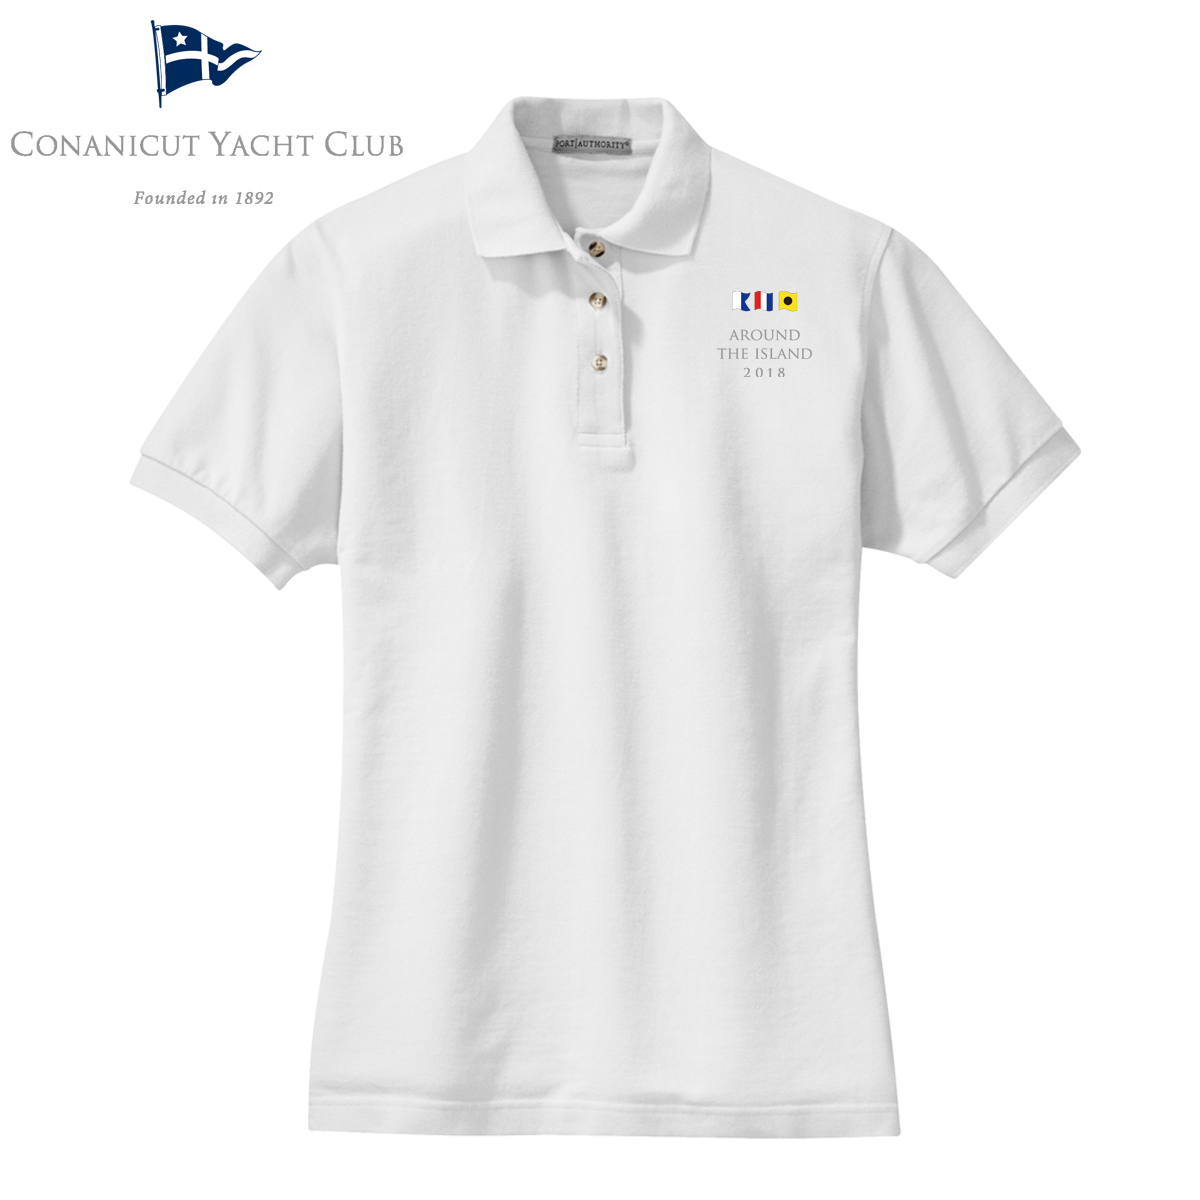 ATI RACE 2018  - W'S COTTON POLO